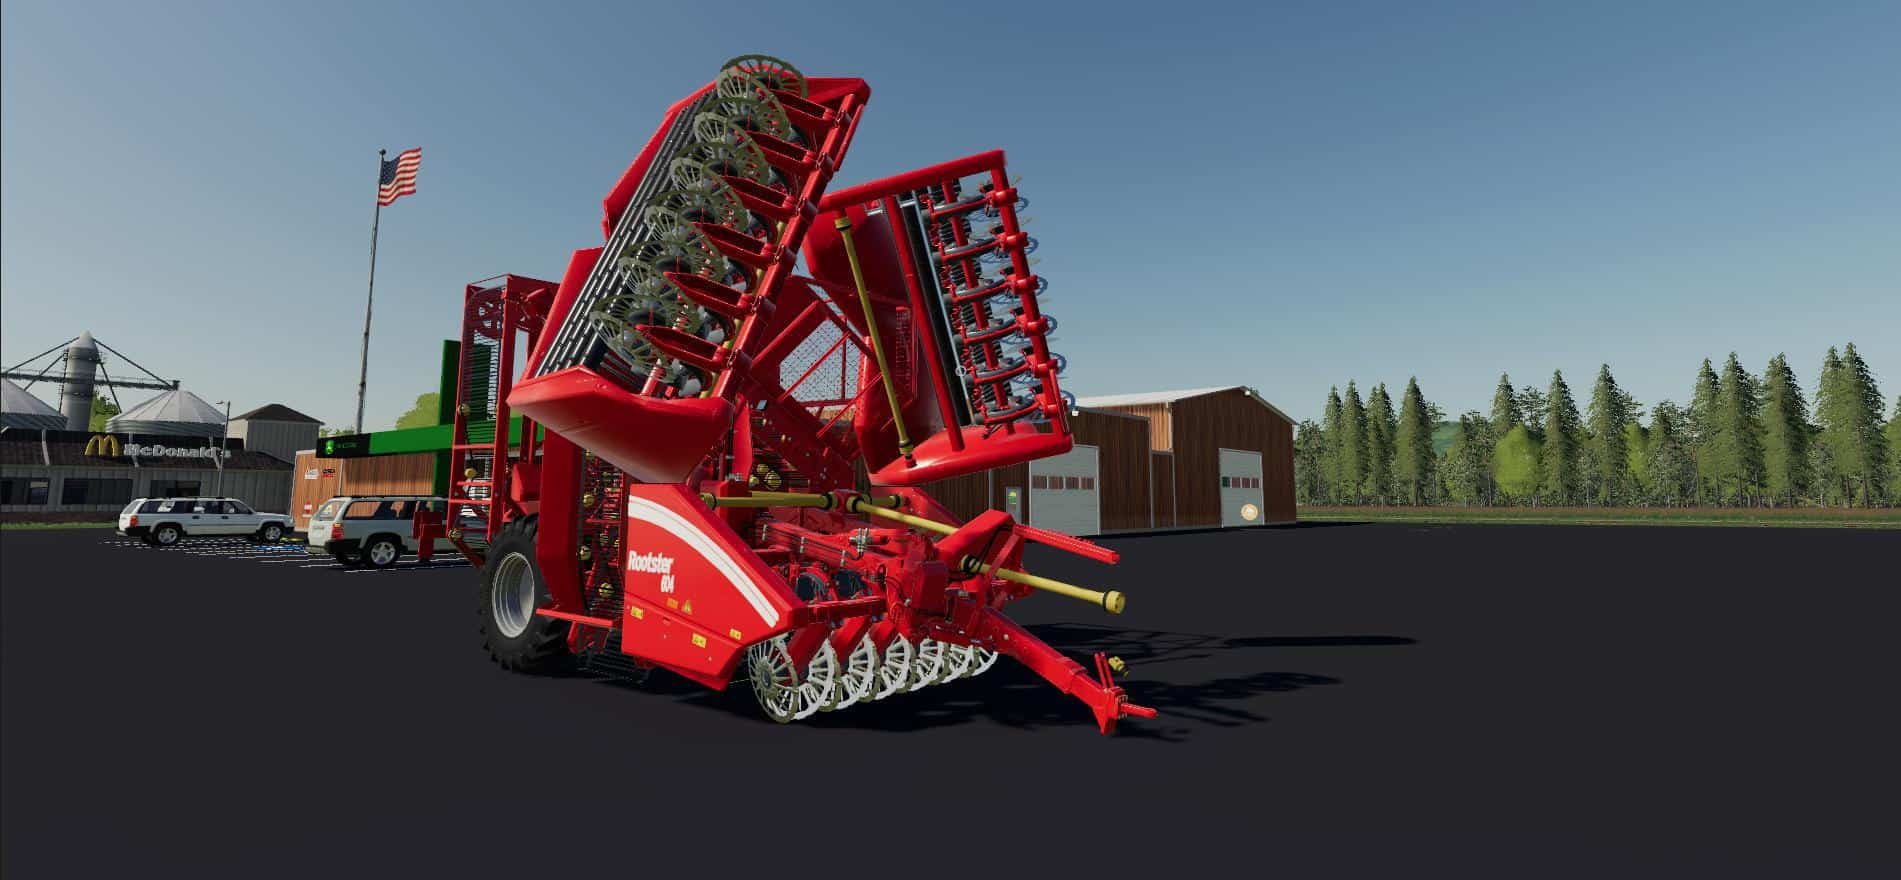 ROOSTER 18 ROW SUGAR BEET HARVESTER v1 0 Mod - Farming Simulator